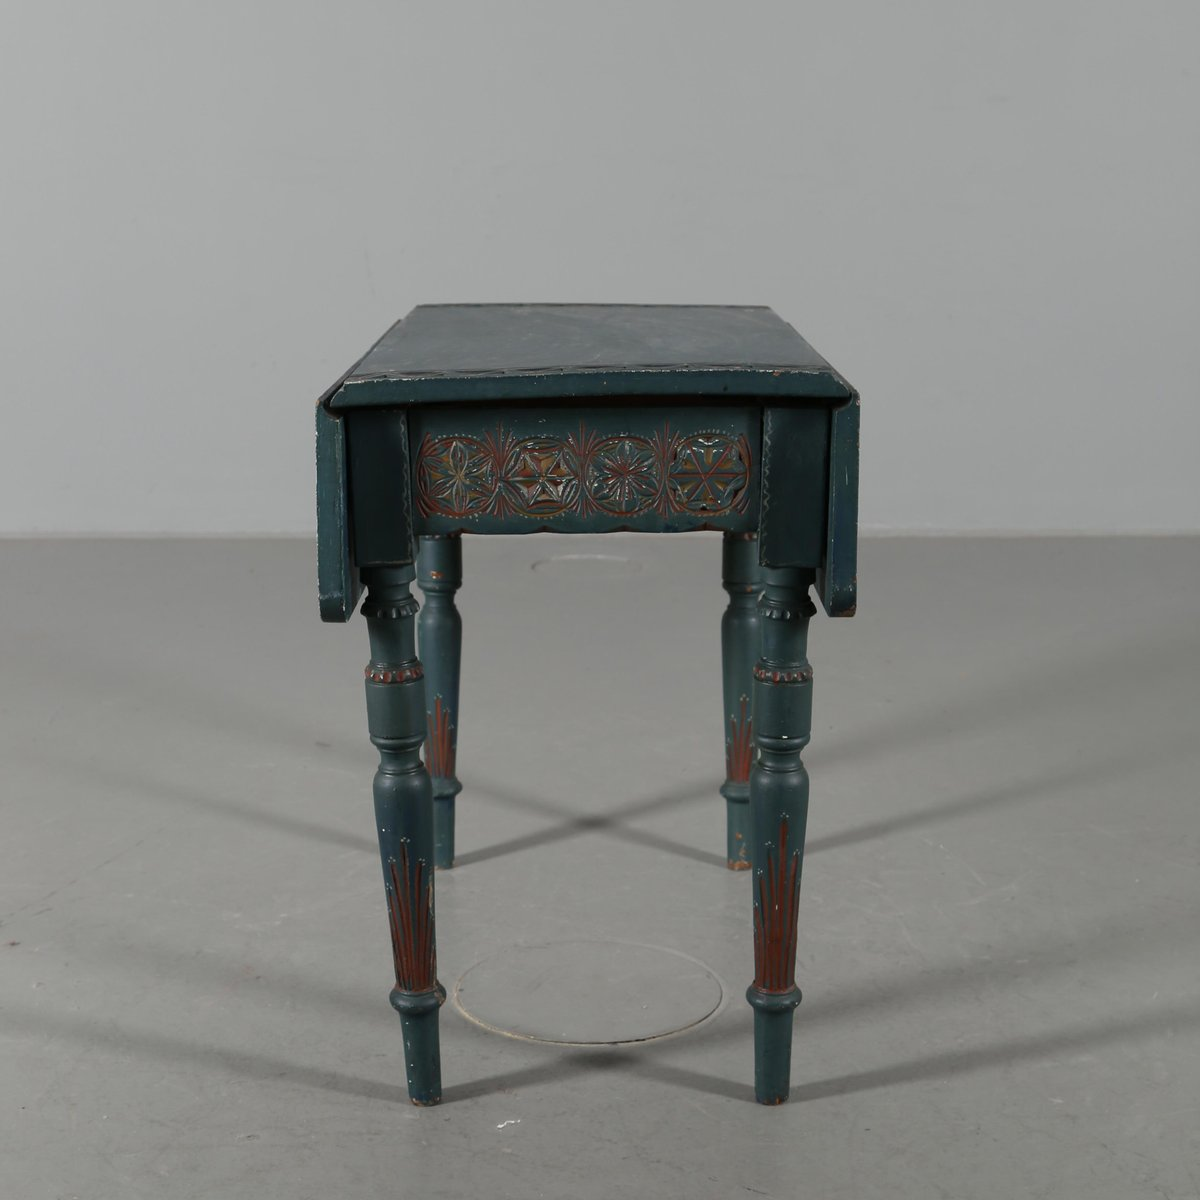 Antique Blue Console Table With Extension Leaves, 1780s